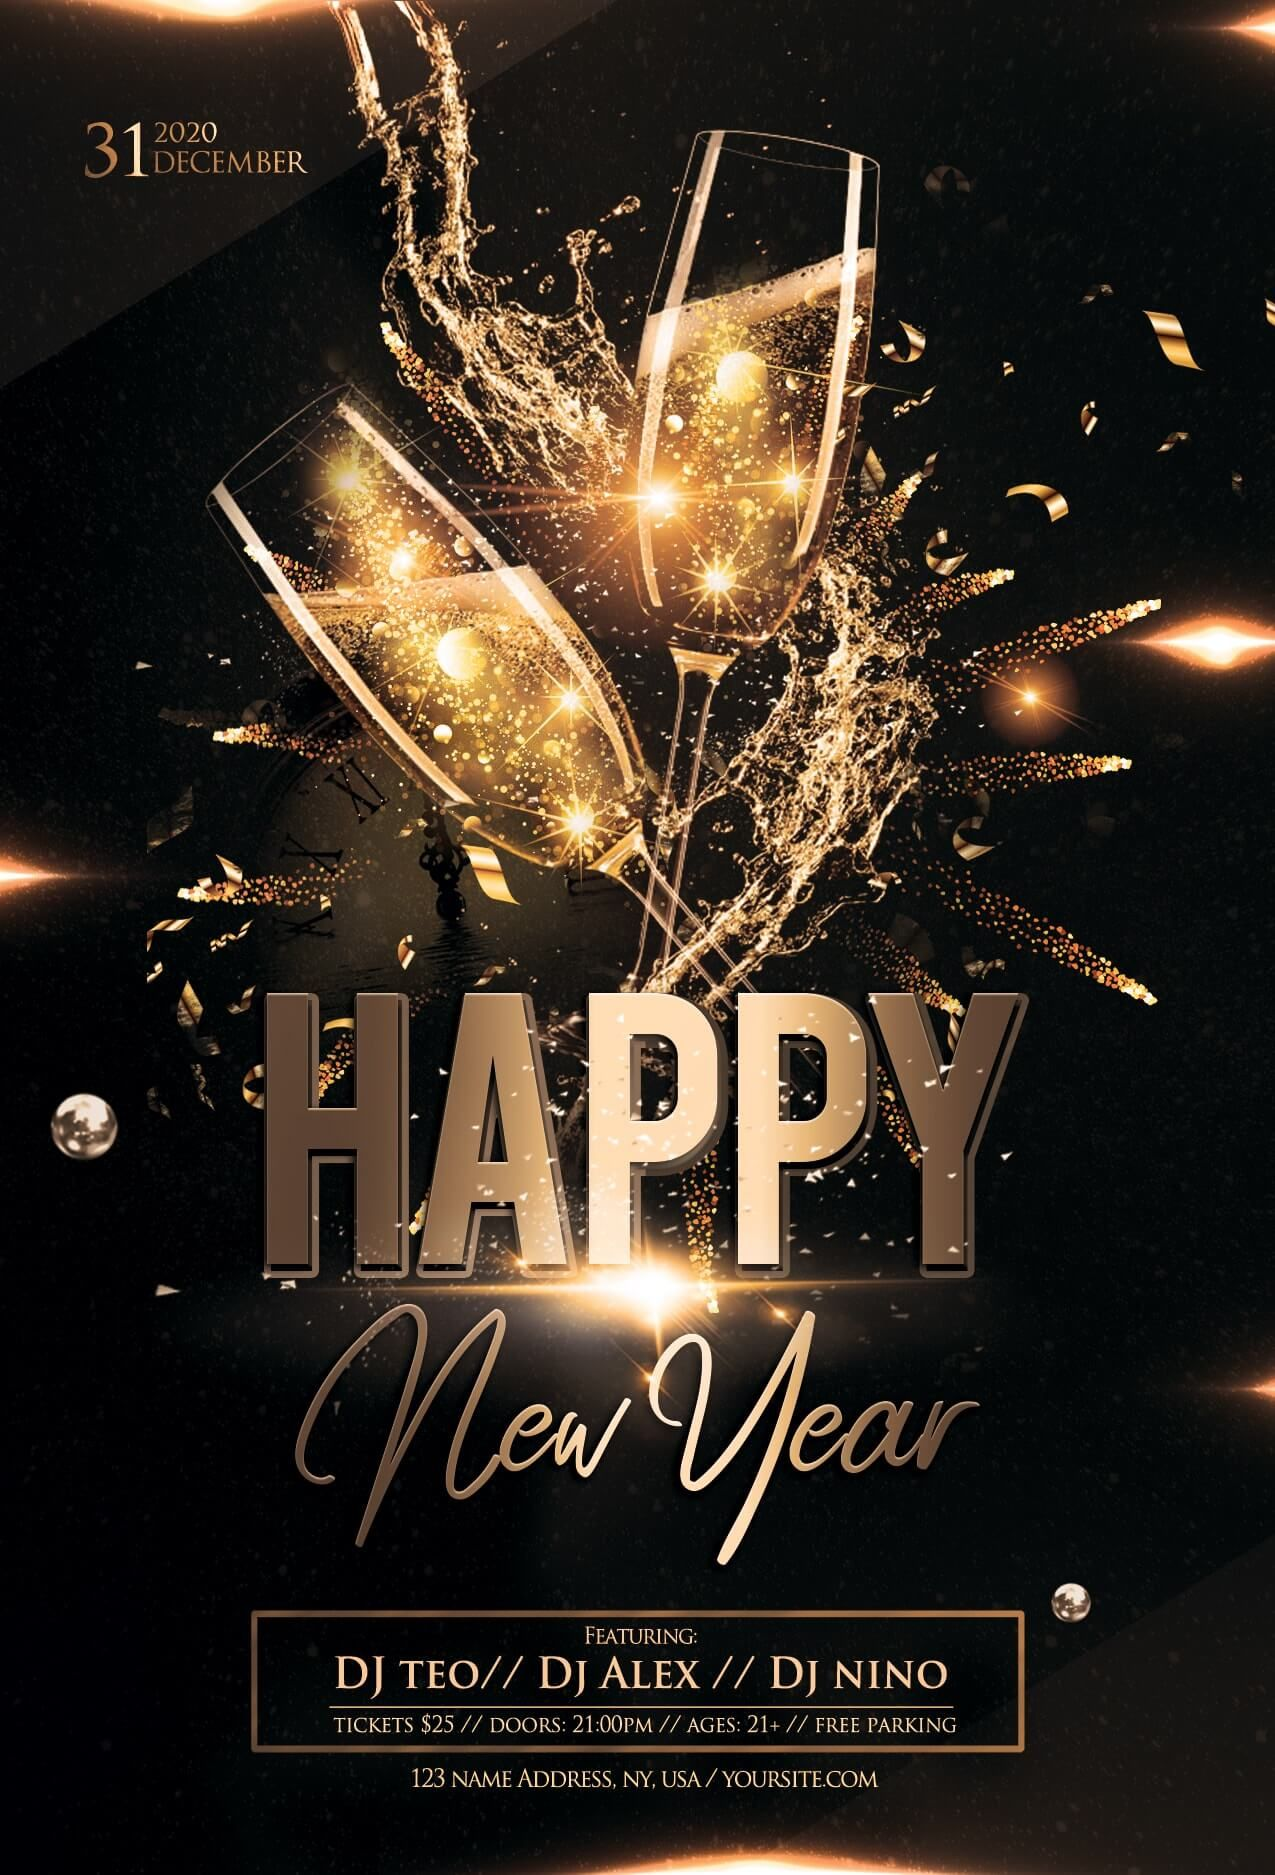 018 Ddianux Min Free New Years Eve Flyer Template Psd In Free New Years Eve Flyer Template New Year S Eve Flyer Happy New Year Pictures New Year Wishes Images